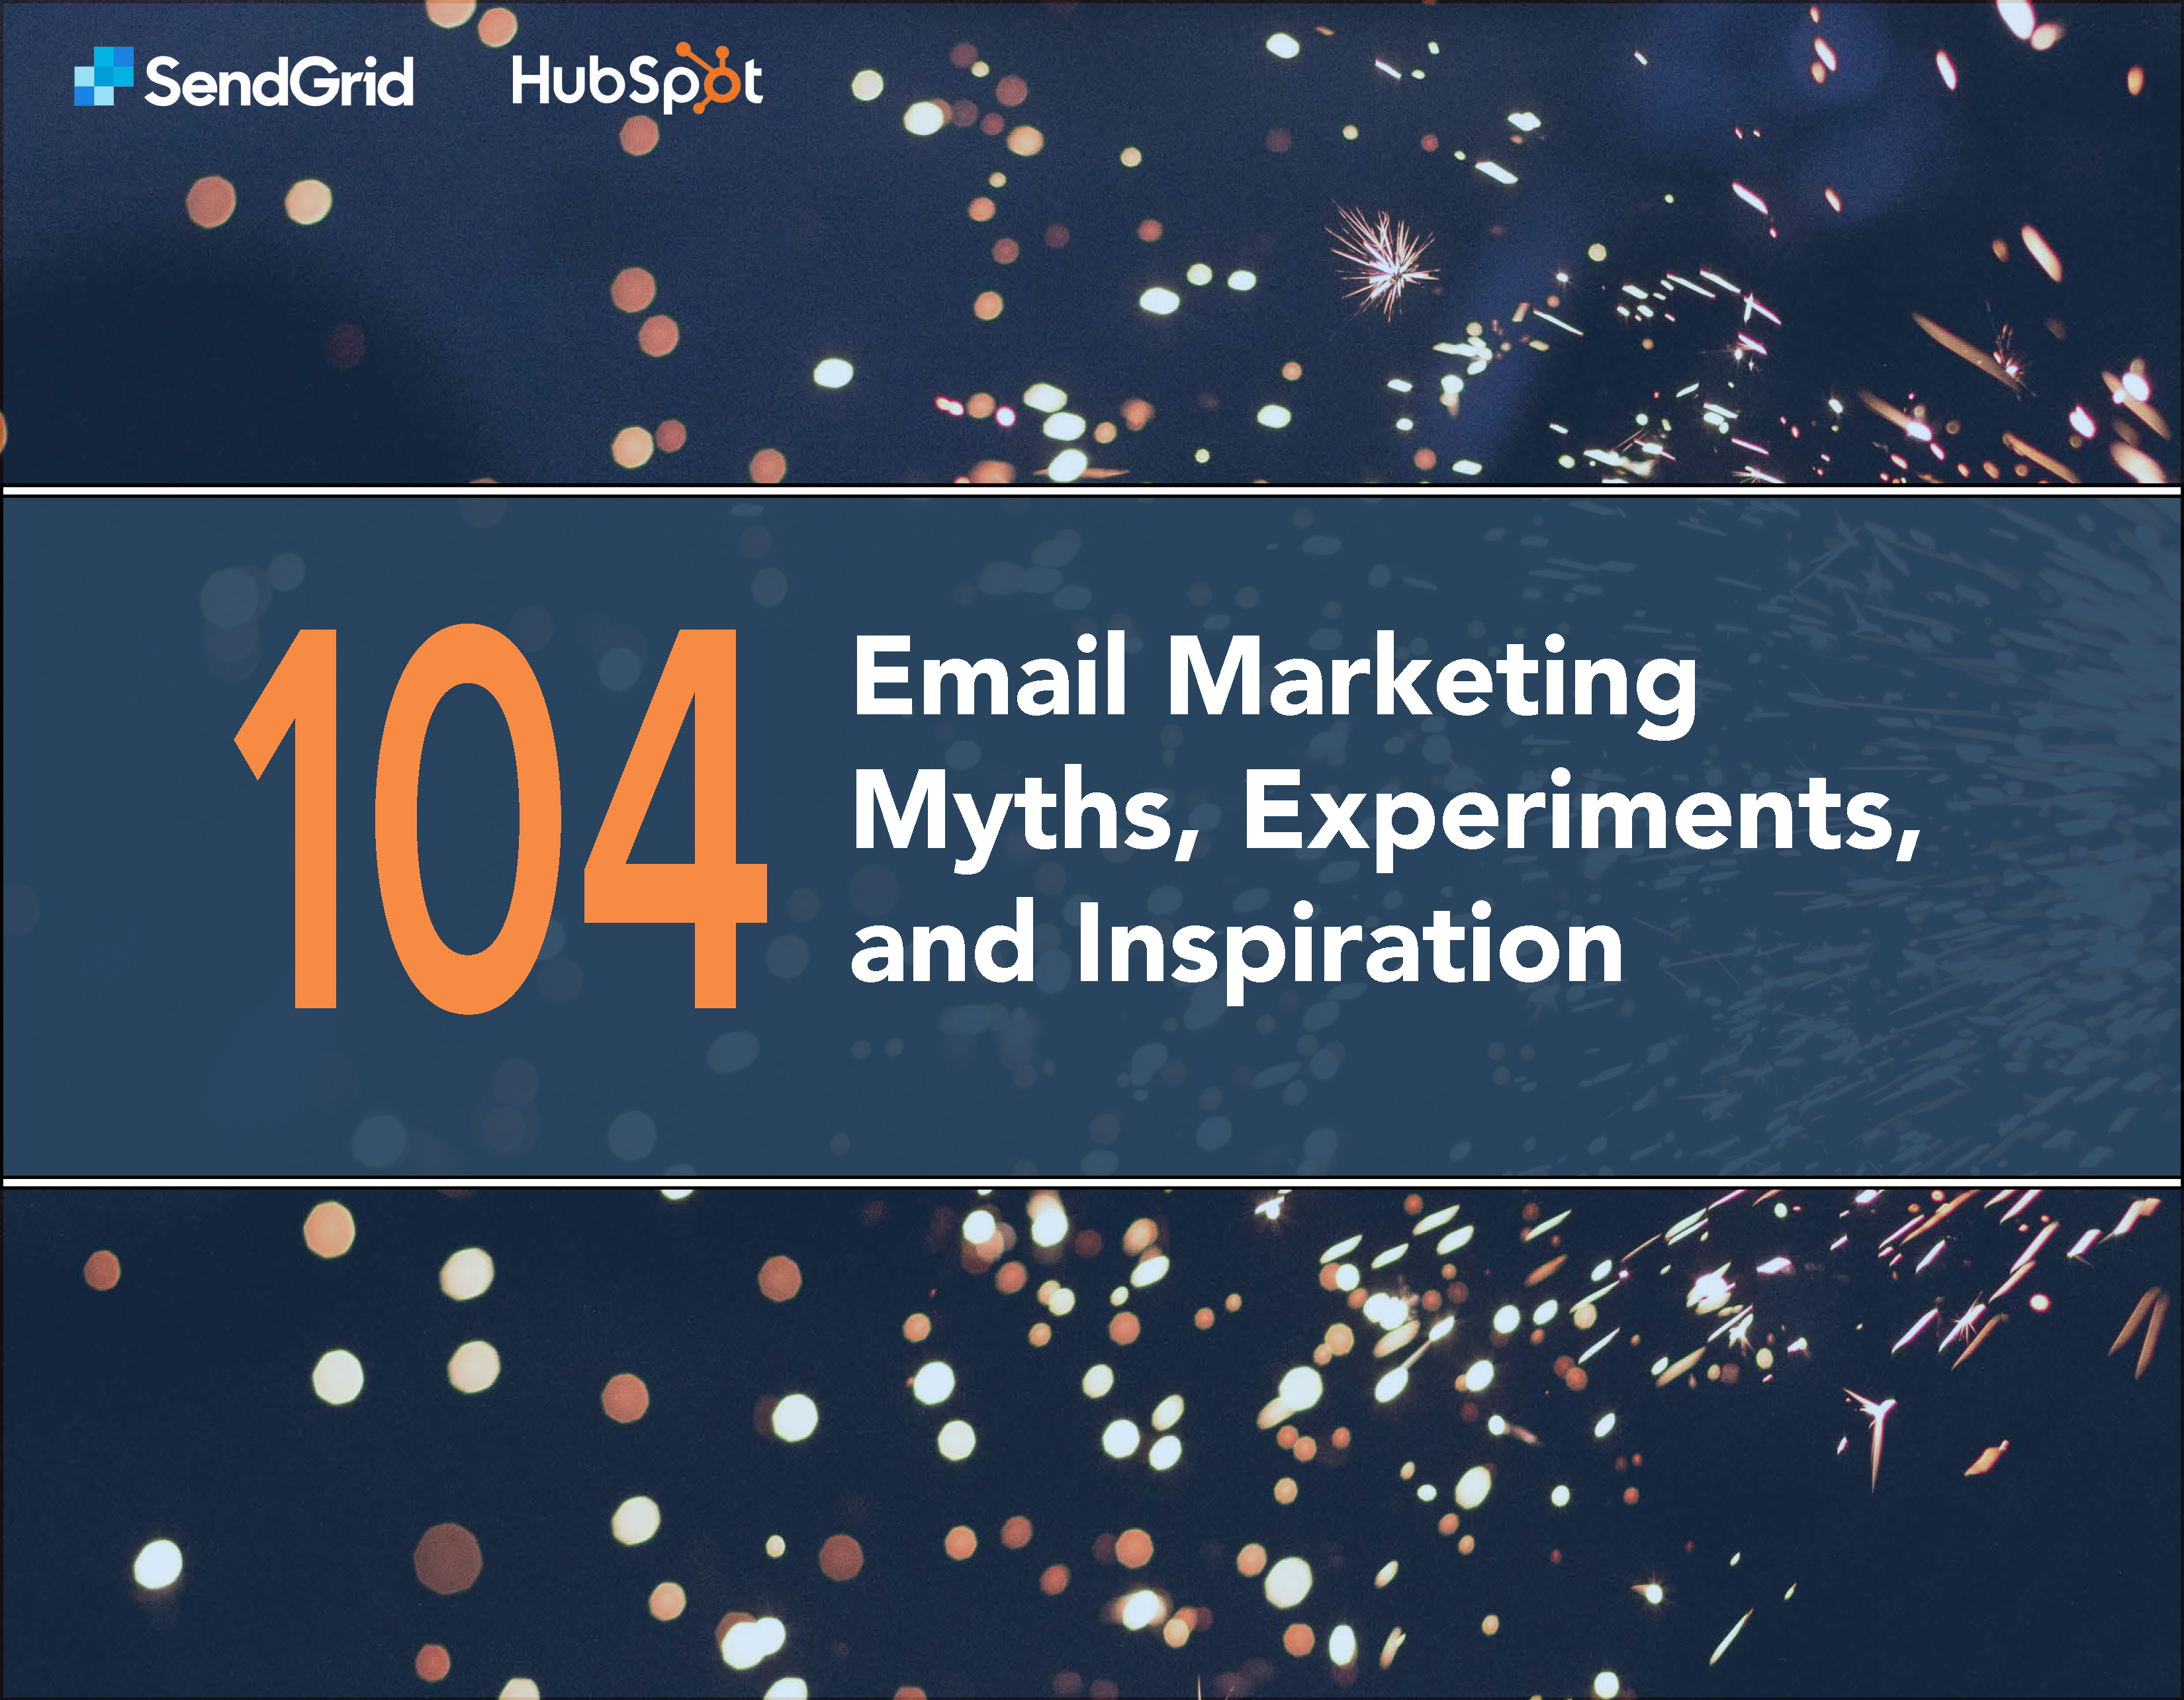 Email_Marketing Myths_Experiments_Inspiration Ebook_1.png